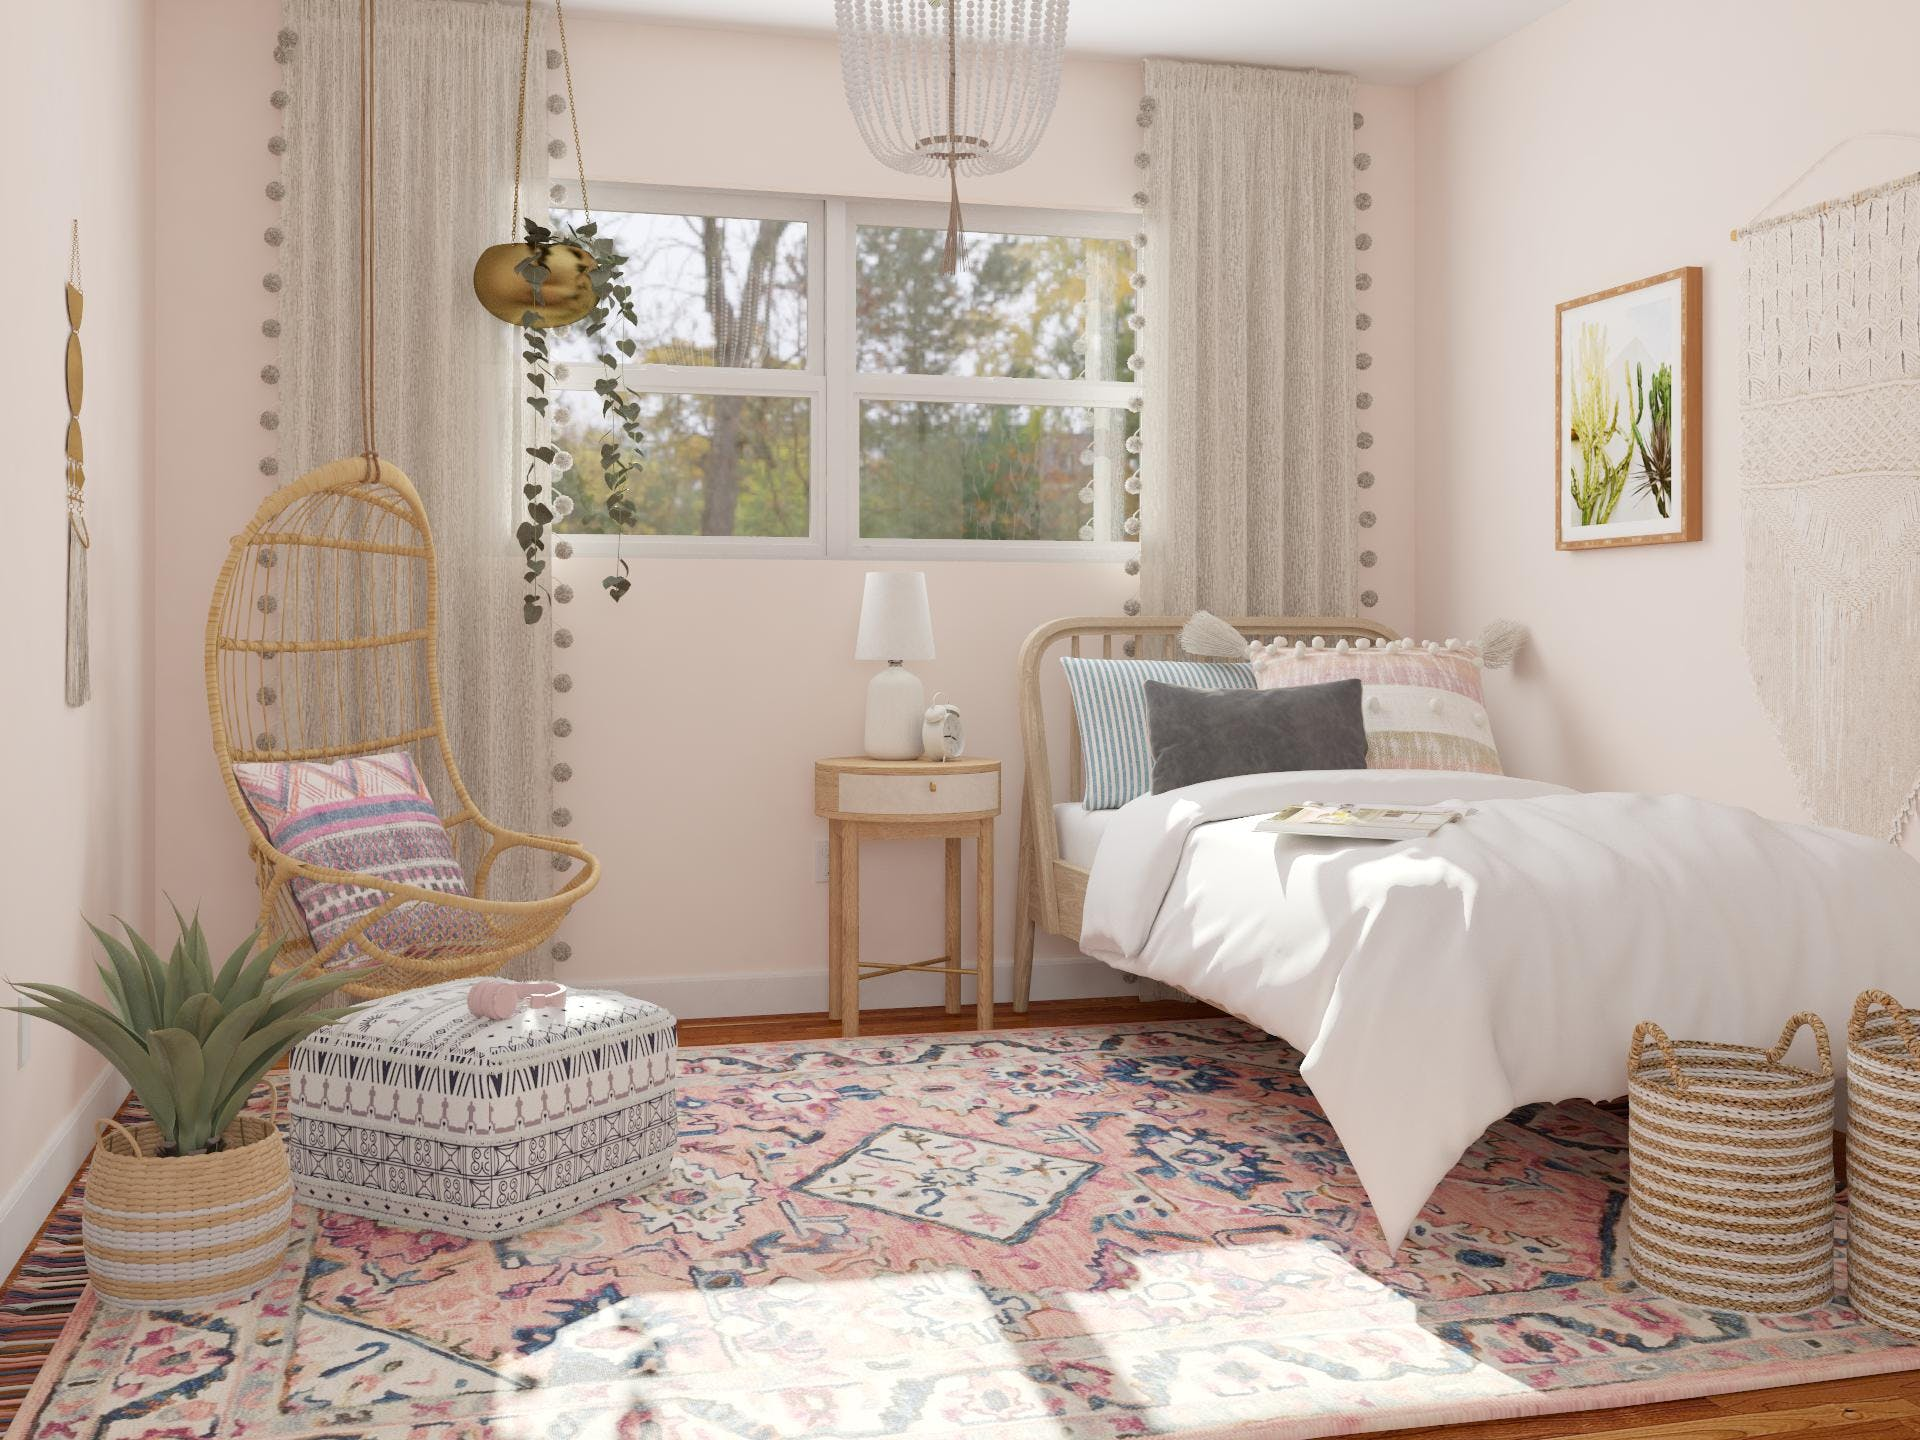 Peachy Keen Bedroom